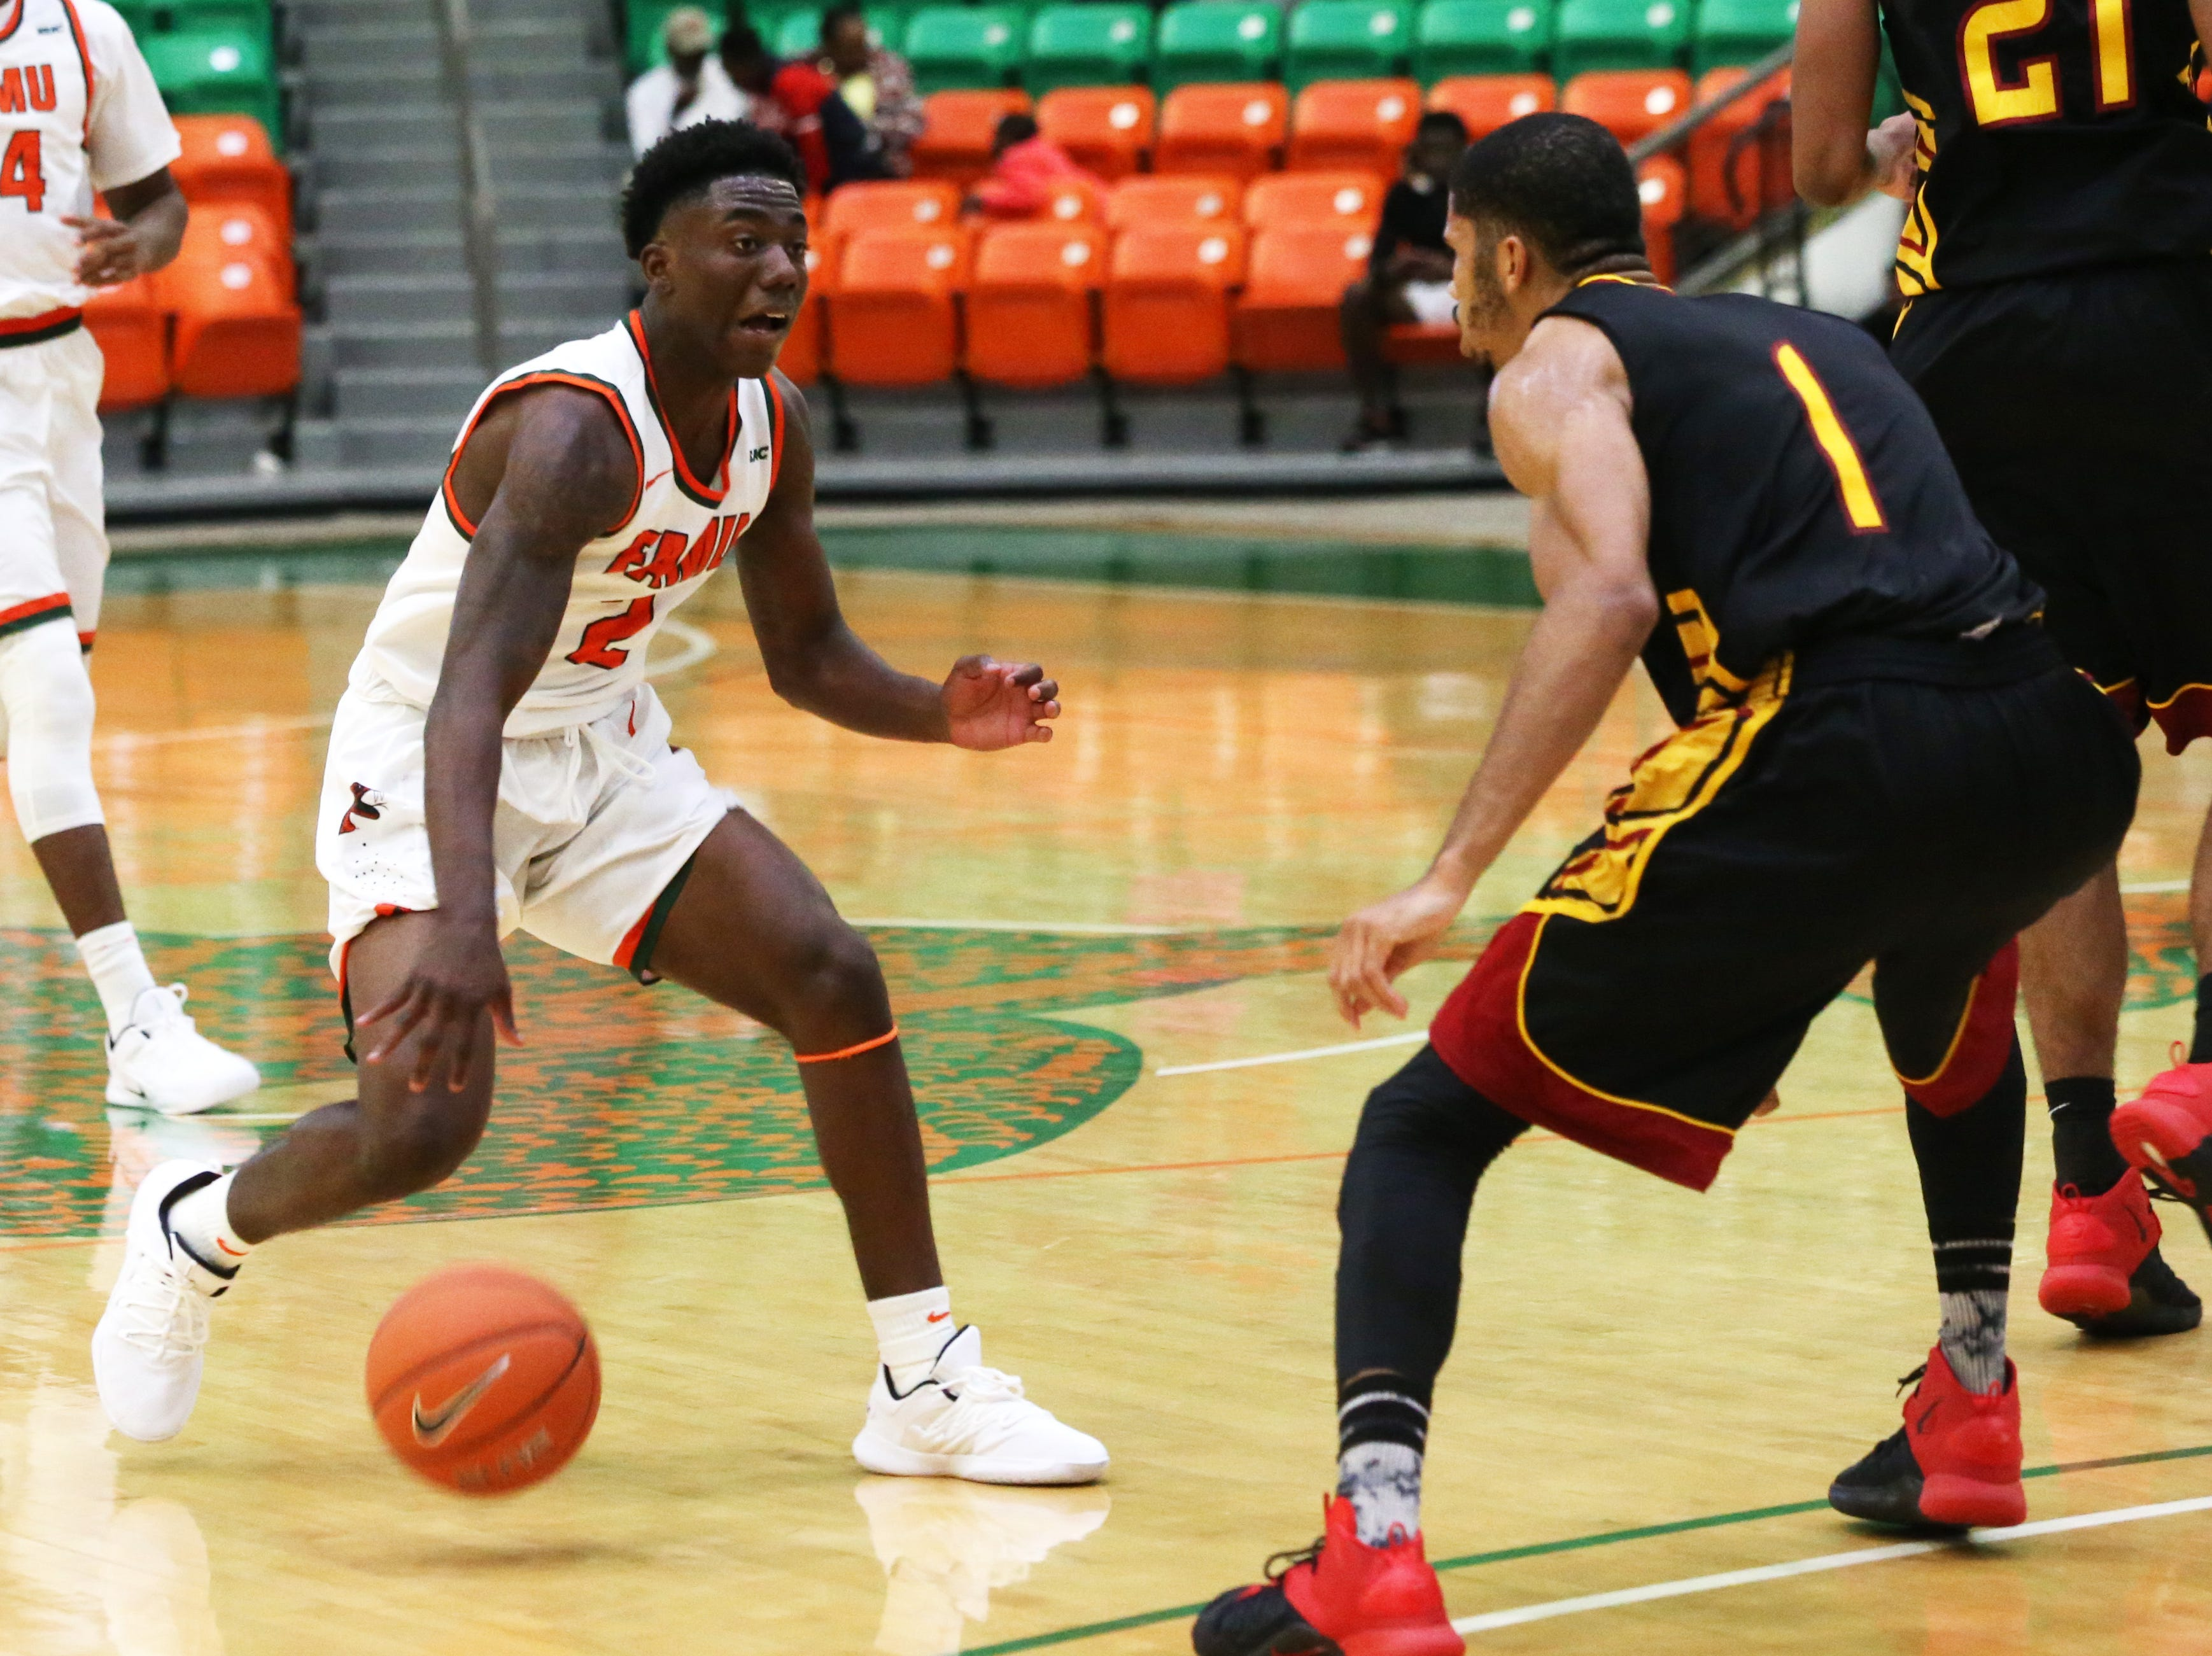 Florida A&M Rattlers guard Kamron Reaves (2) tries to maneuver around his defender as the FAMU Rattlers take on the Tuskegee Golden Tigers in their first home game of the season in the Lawson Center, Saturday, Nov. 10, 2018.